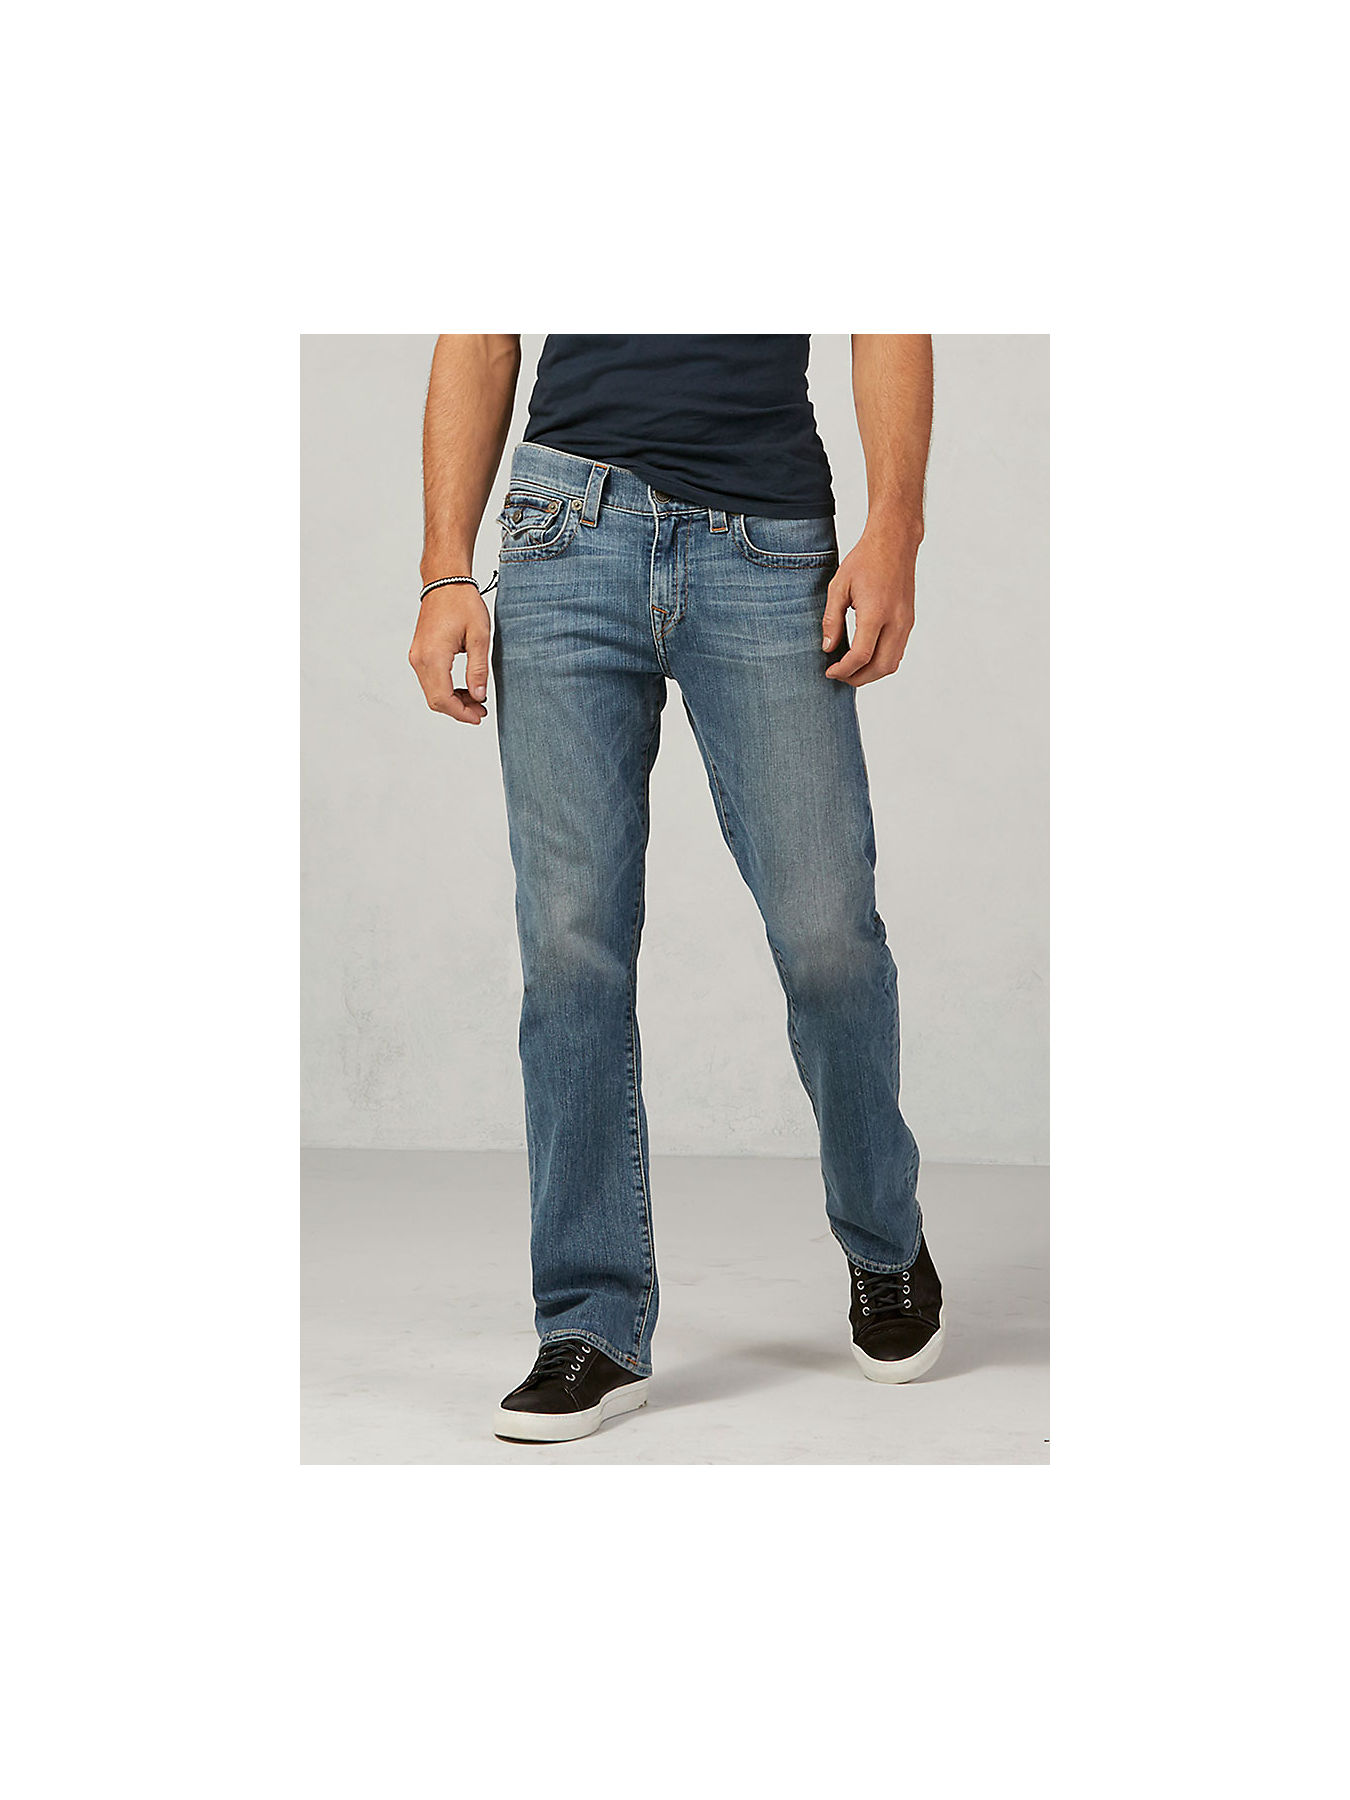 2b5fdab0b Men s Bootcut Jeans - The Billy - True Religion